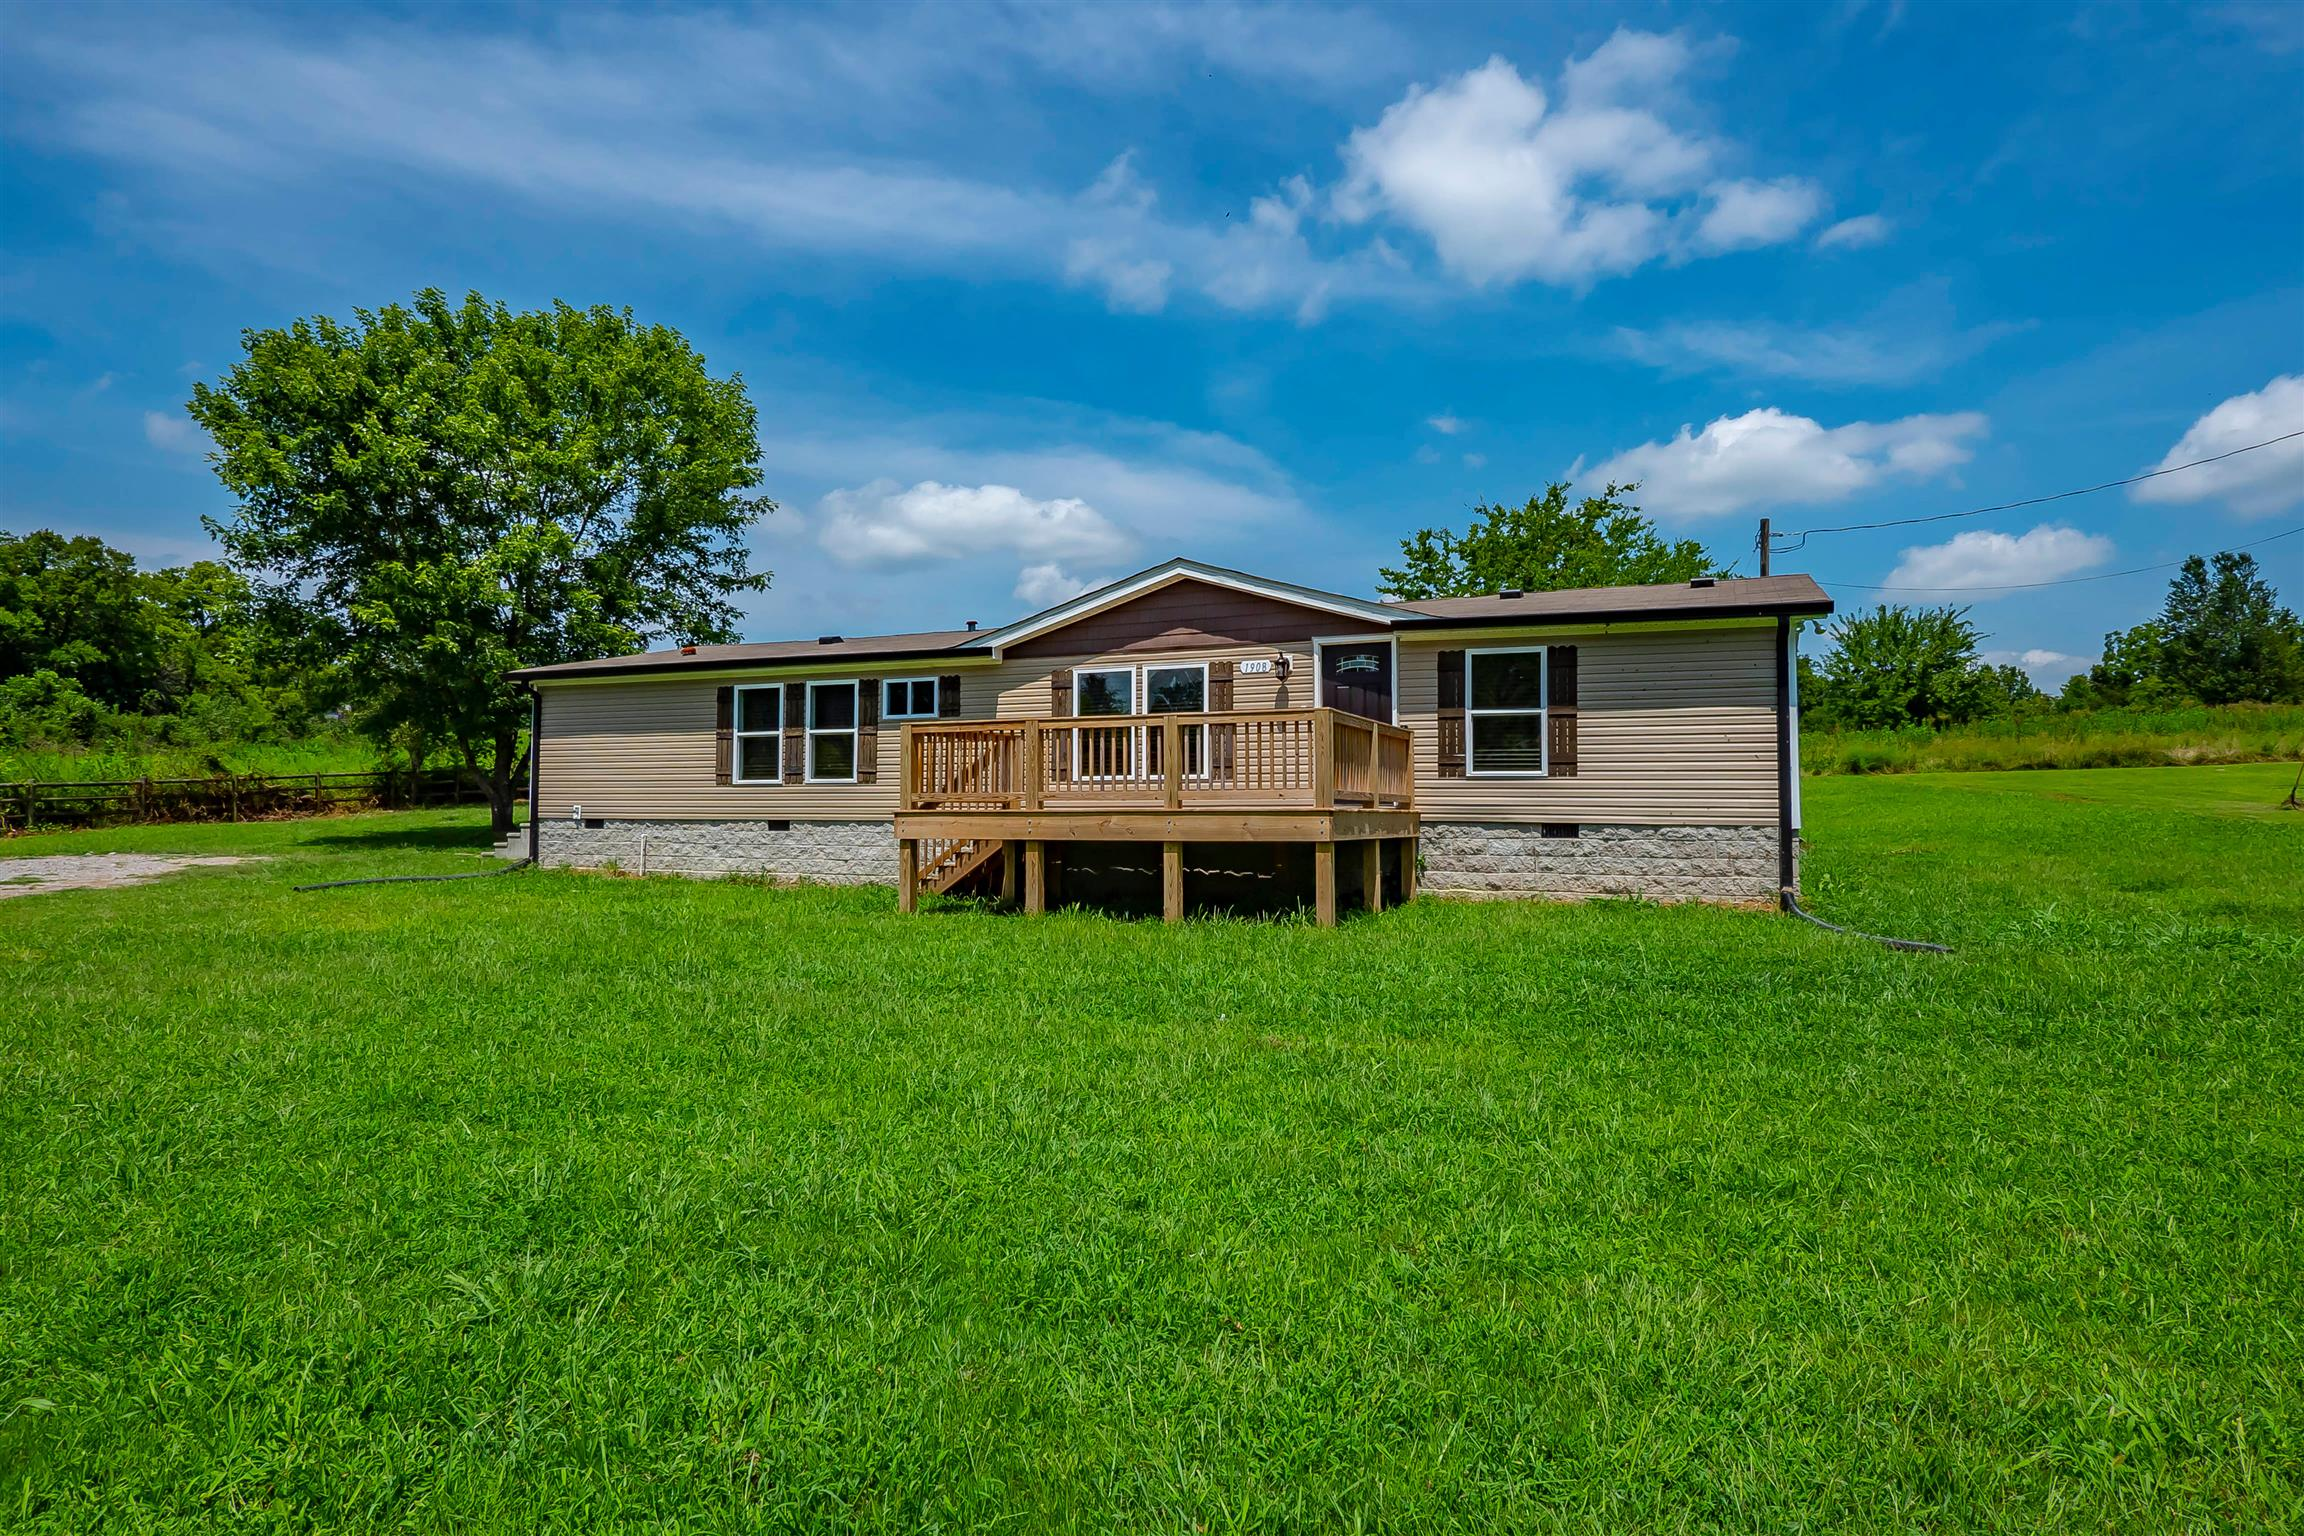 1908 New Ostella Rd, Cornersville, TN 37047 - Cornersville, TN real estate listing